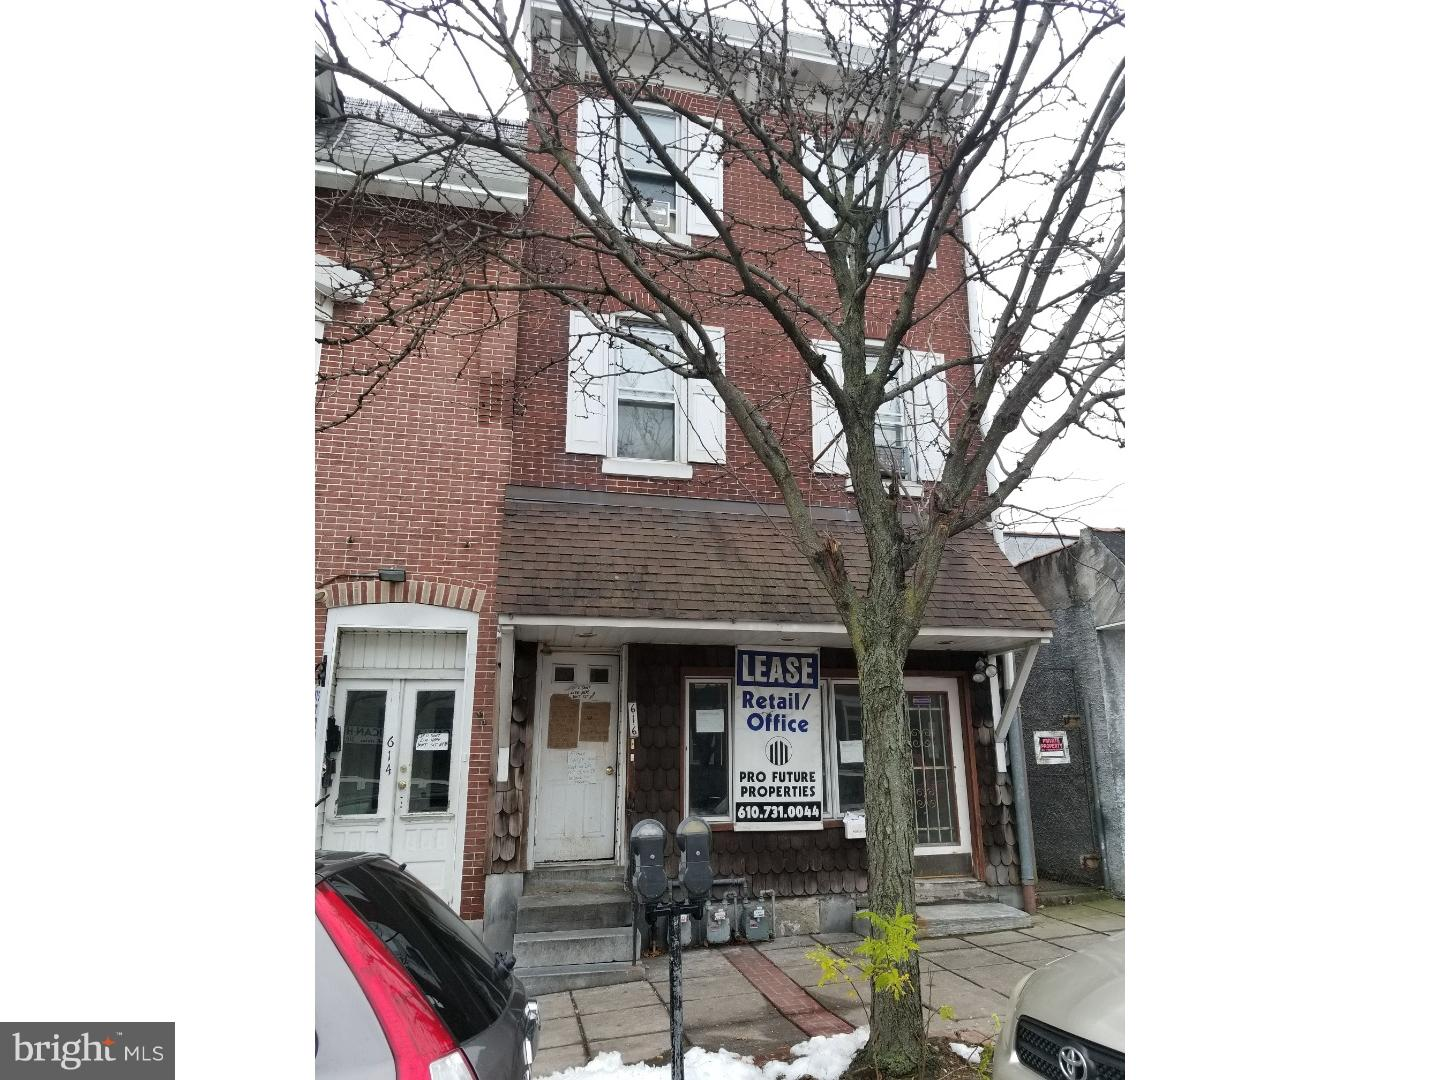 Property for Rent at 616 W MARSHALL Street Norristown, Pennsylvania 19401 United States